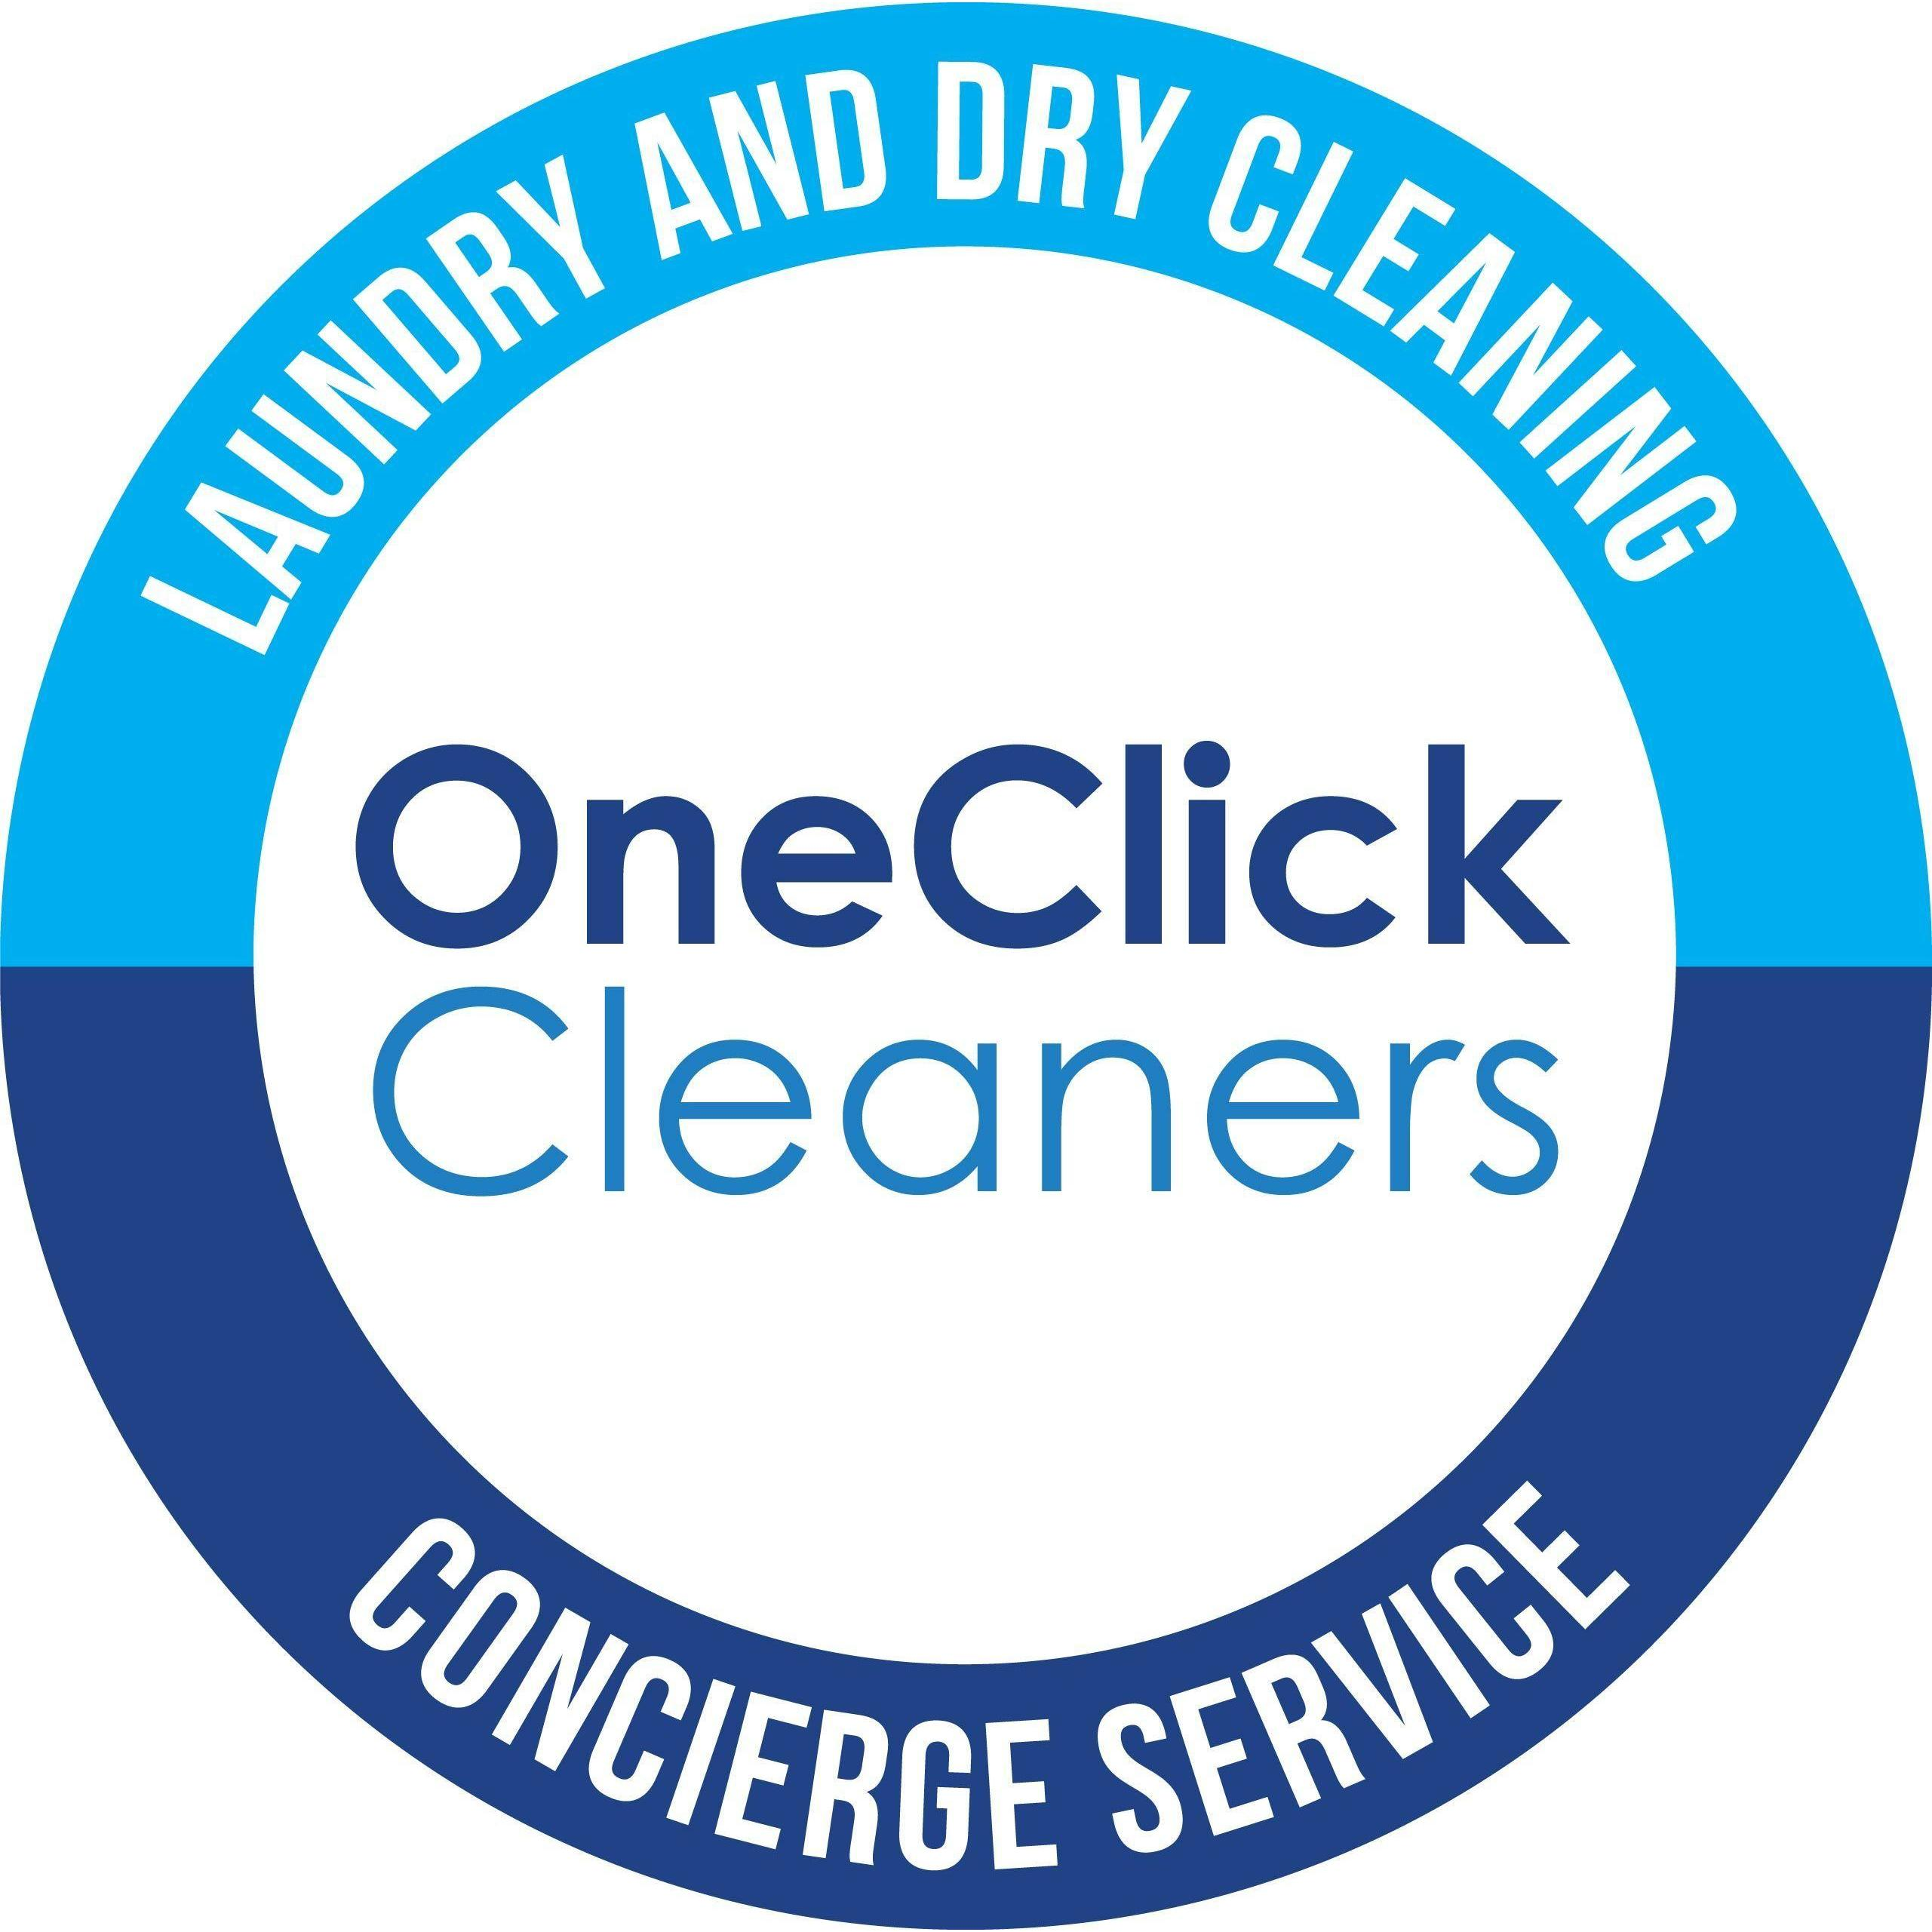 OneClick Cleaners